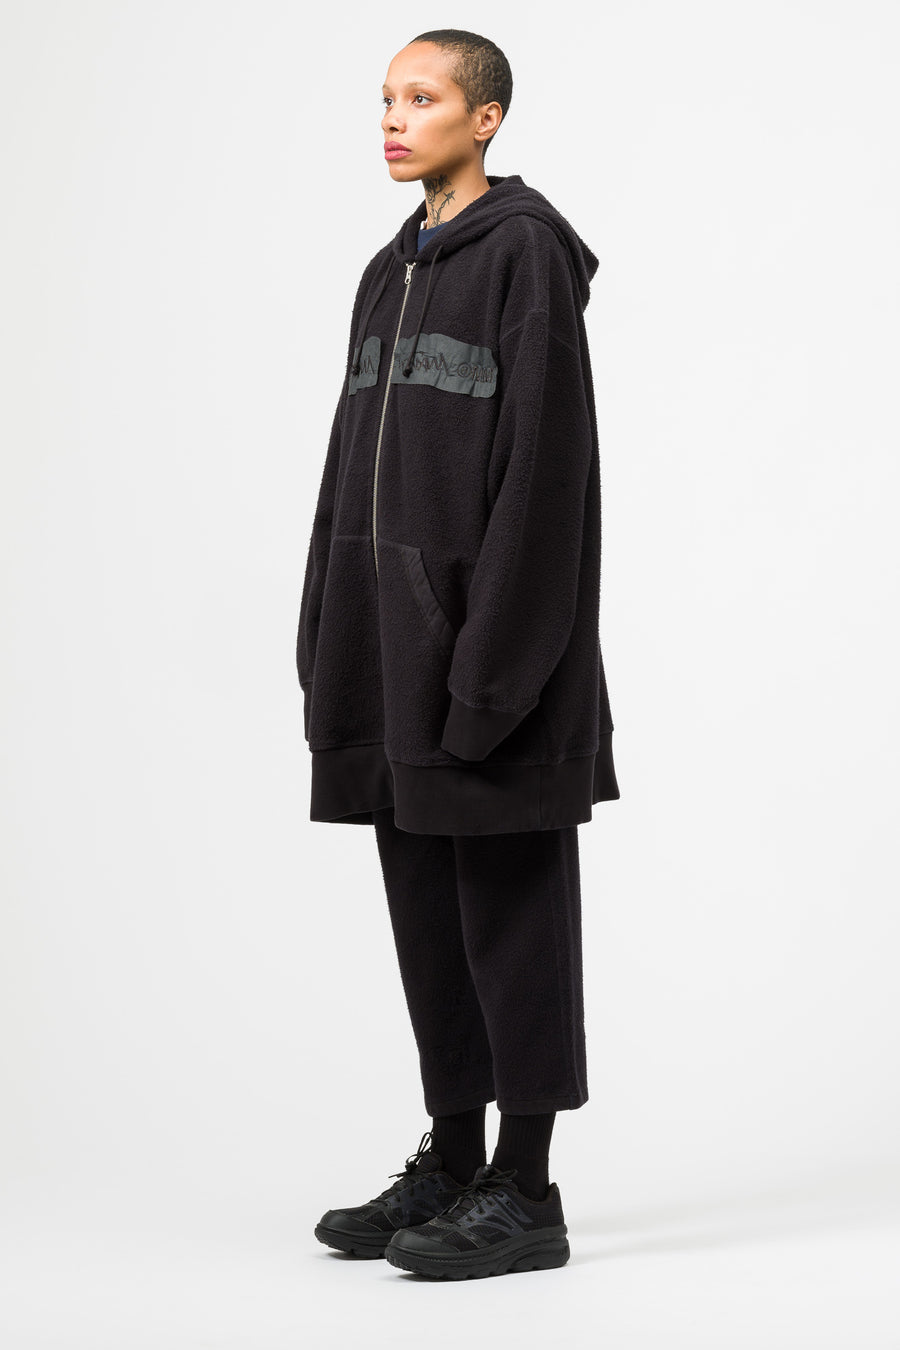 Maison Margiela MM6 Oversized Zip Up Hoodie in Black - Notre